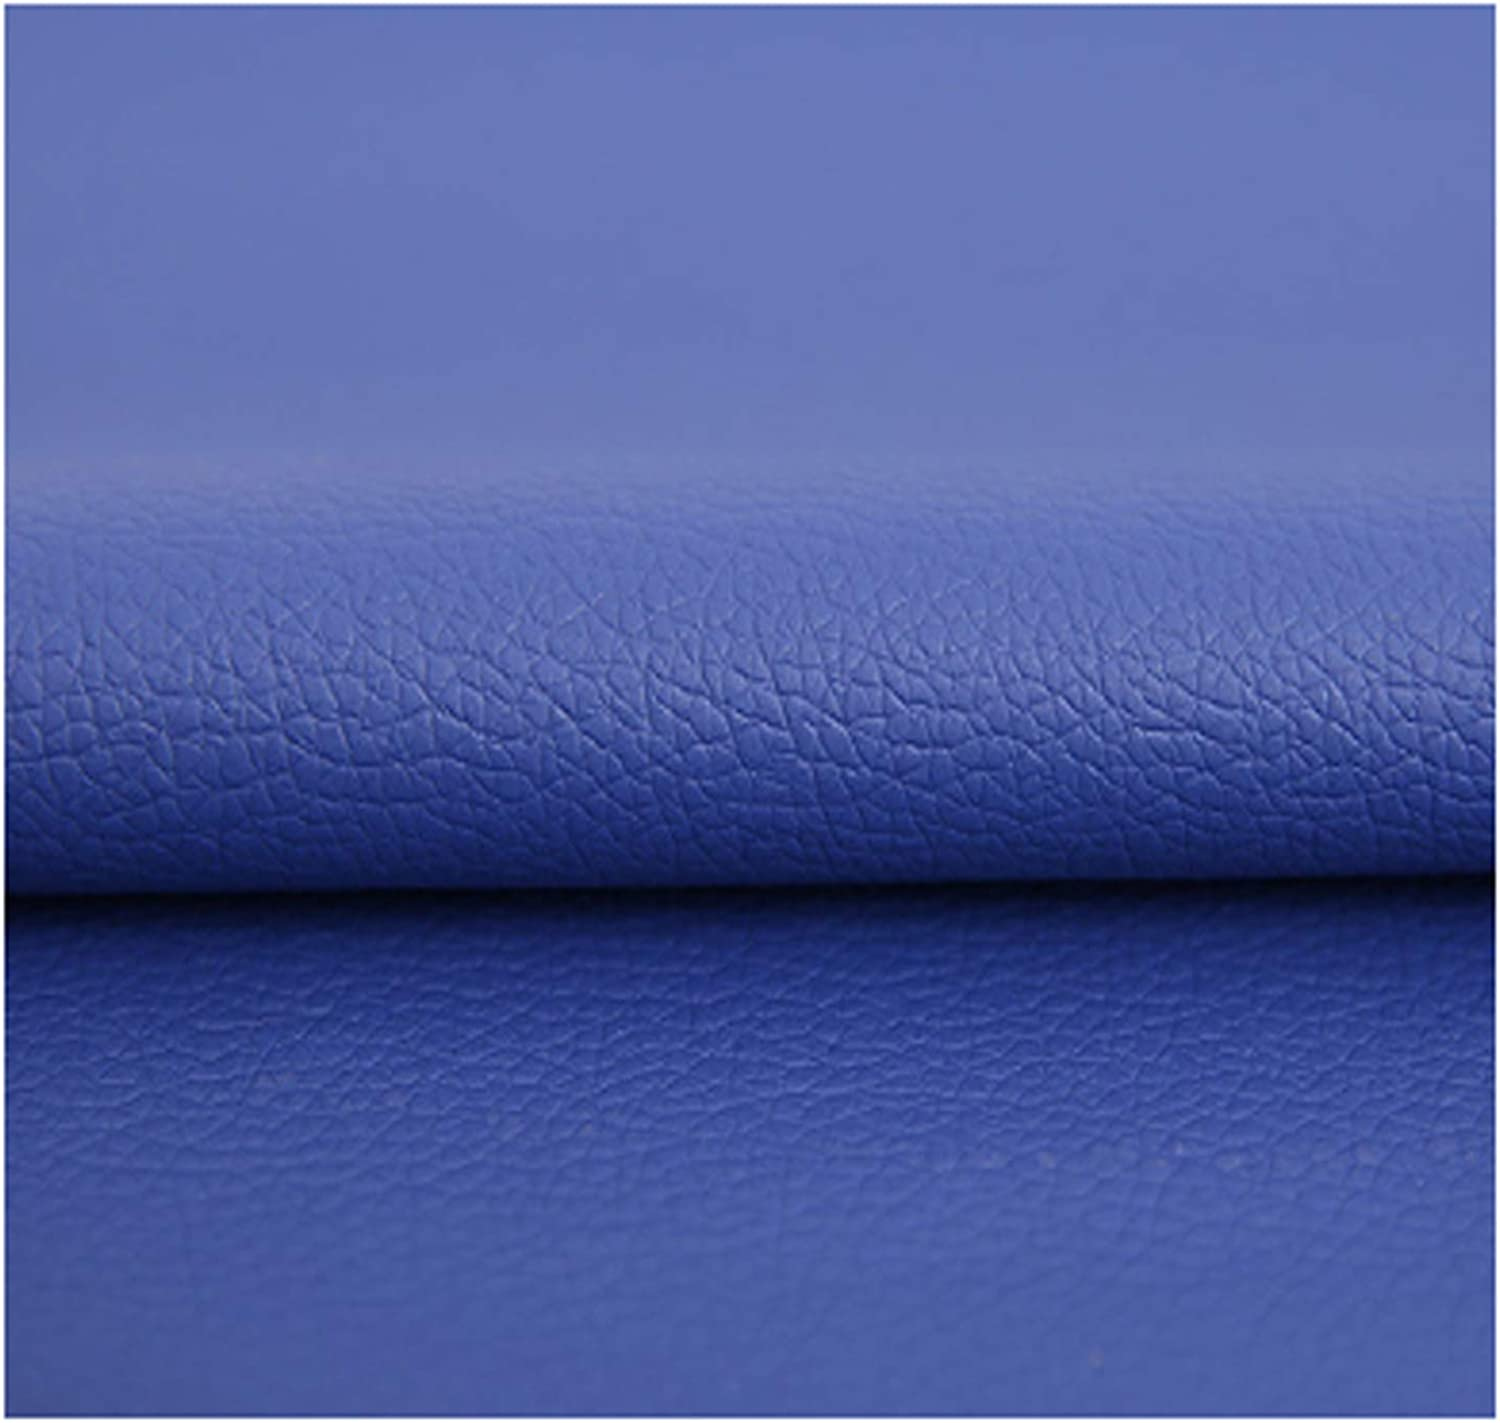 ZHIHEHE Fabrics Faux Leather 5 ☆ very popular Stain Popular popular Material Resista